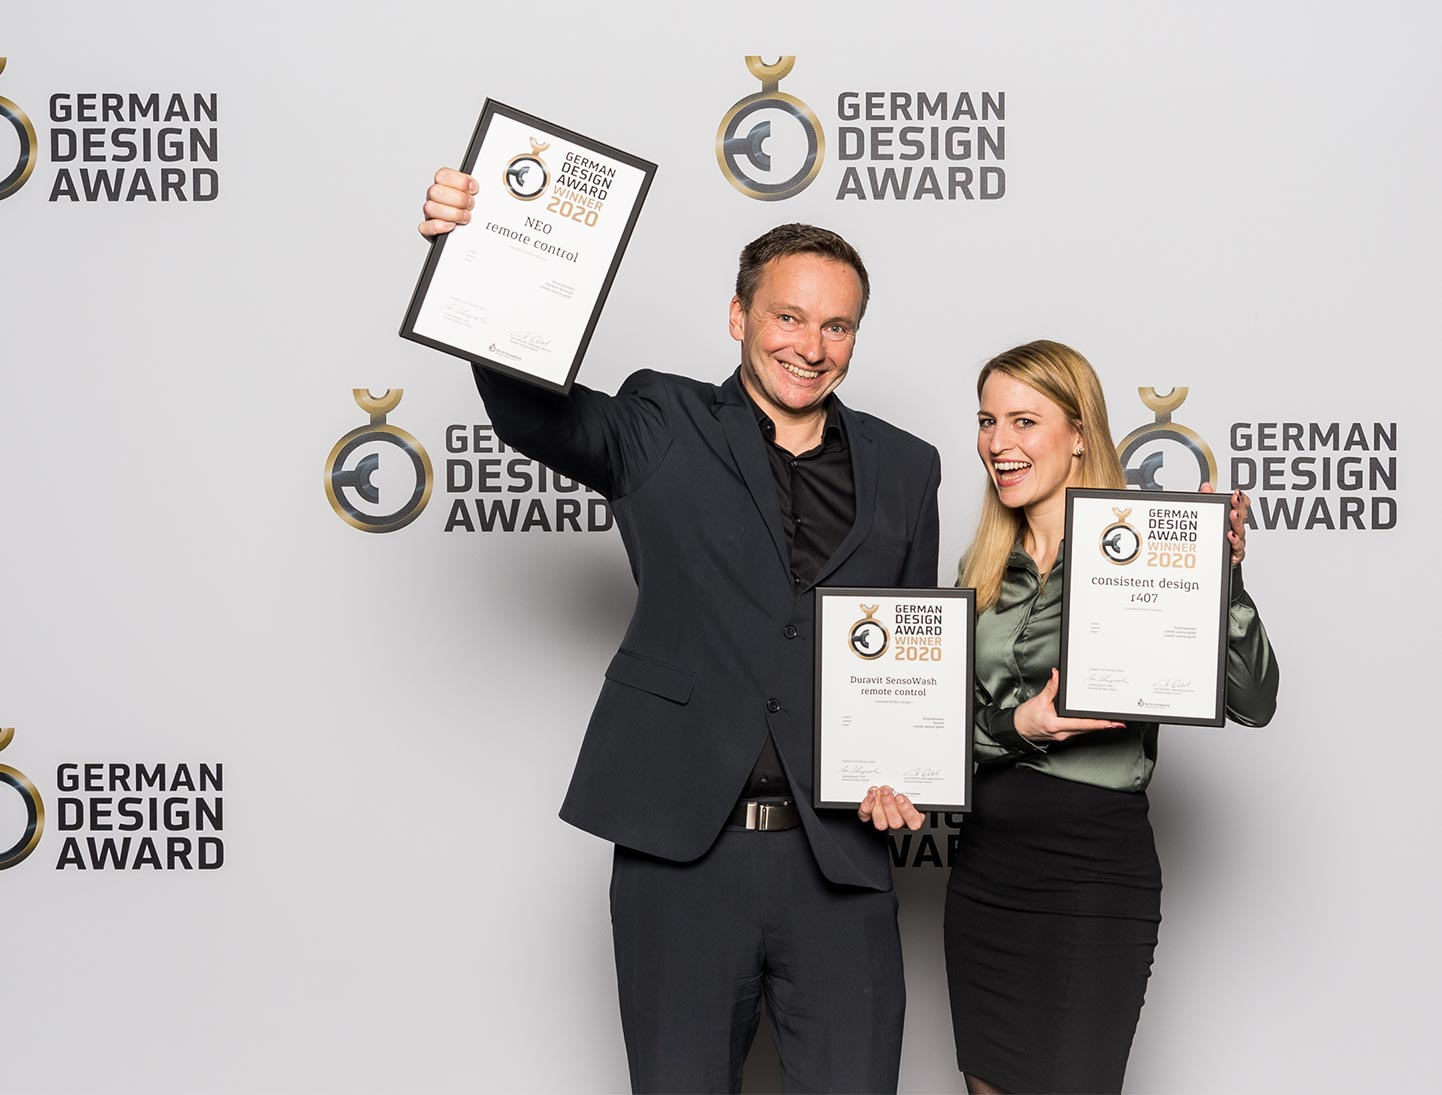 outstanding success for ruwido's consistent design r407 at german design awards 2020